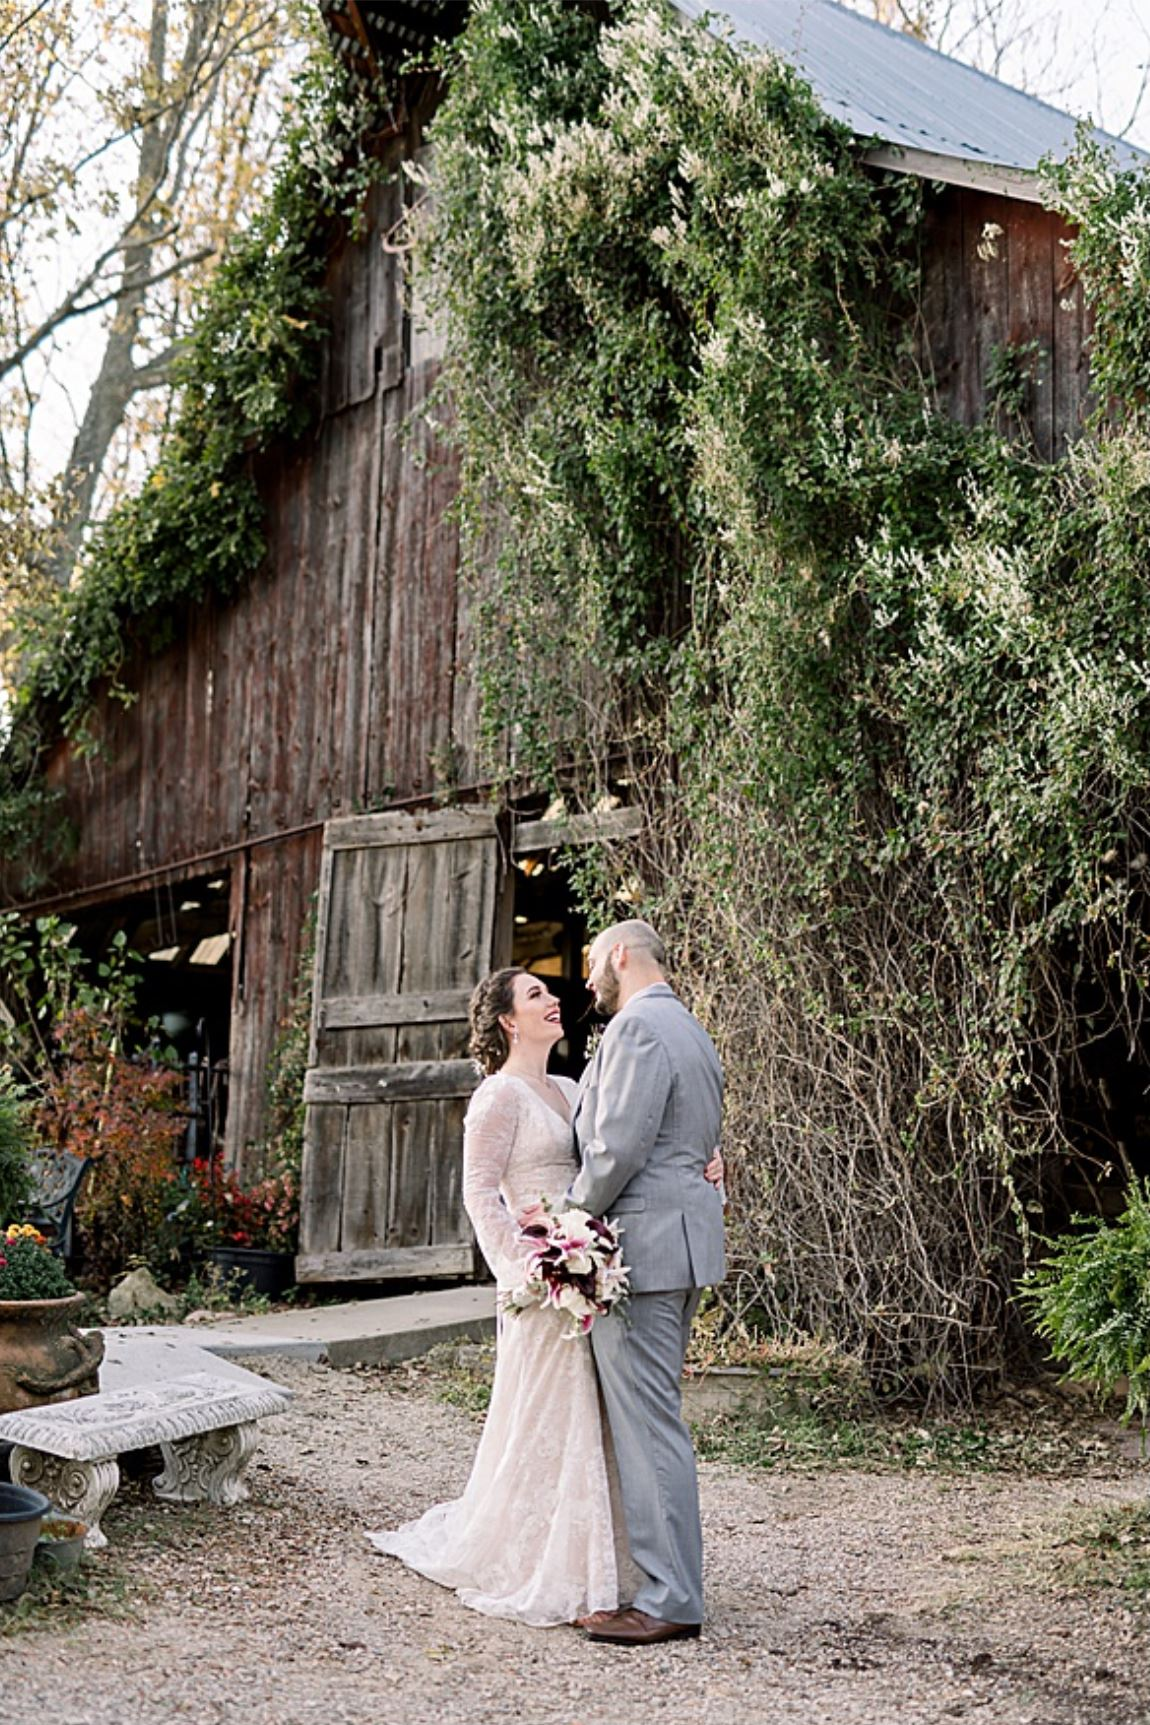 A wedding couple is standing in front of a barn at Paradise Park in Missouri.